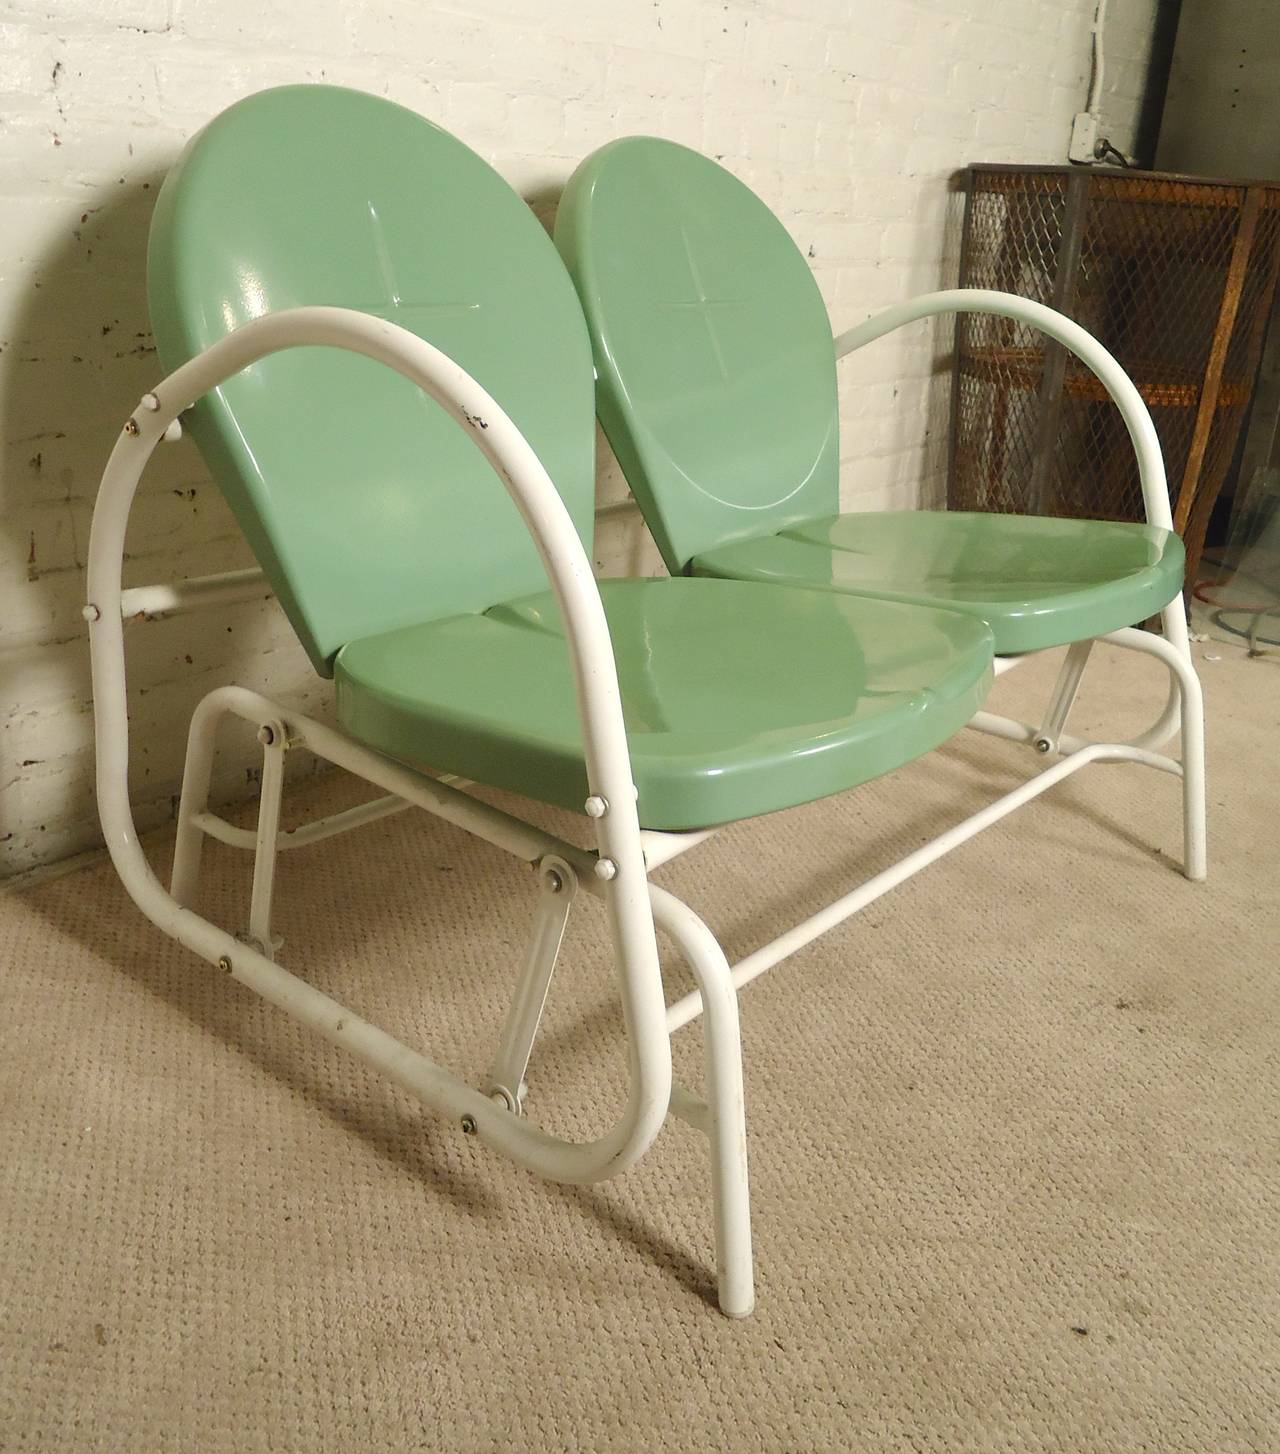 new arrival 37043 7679a Mid-Century Modern Patio Glider For Sale at 1stdibs